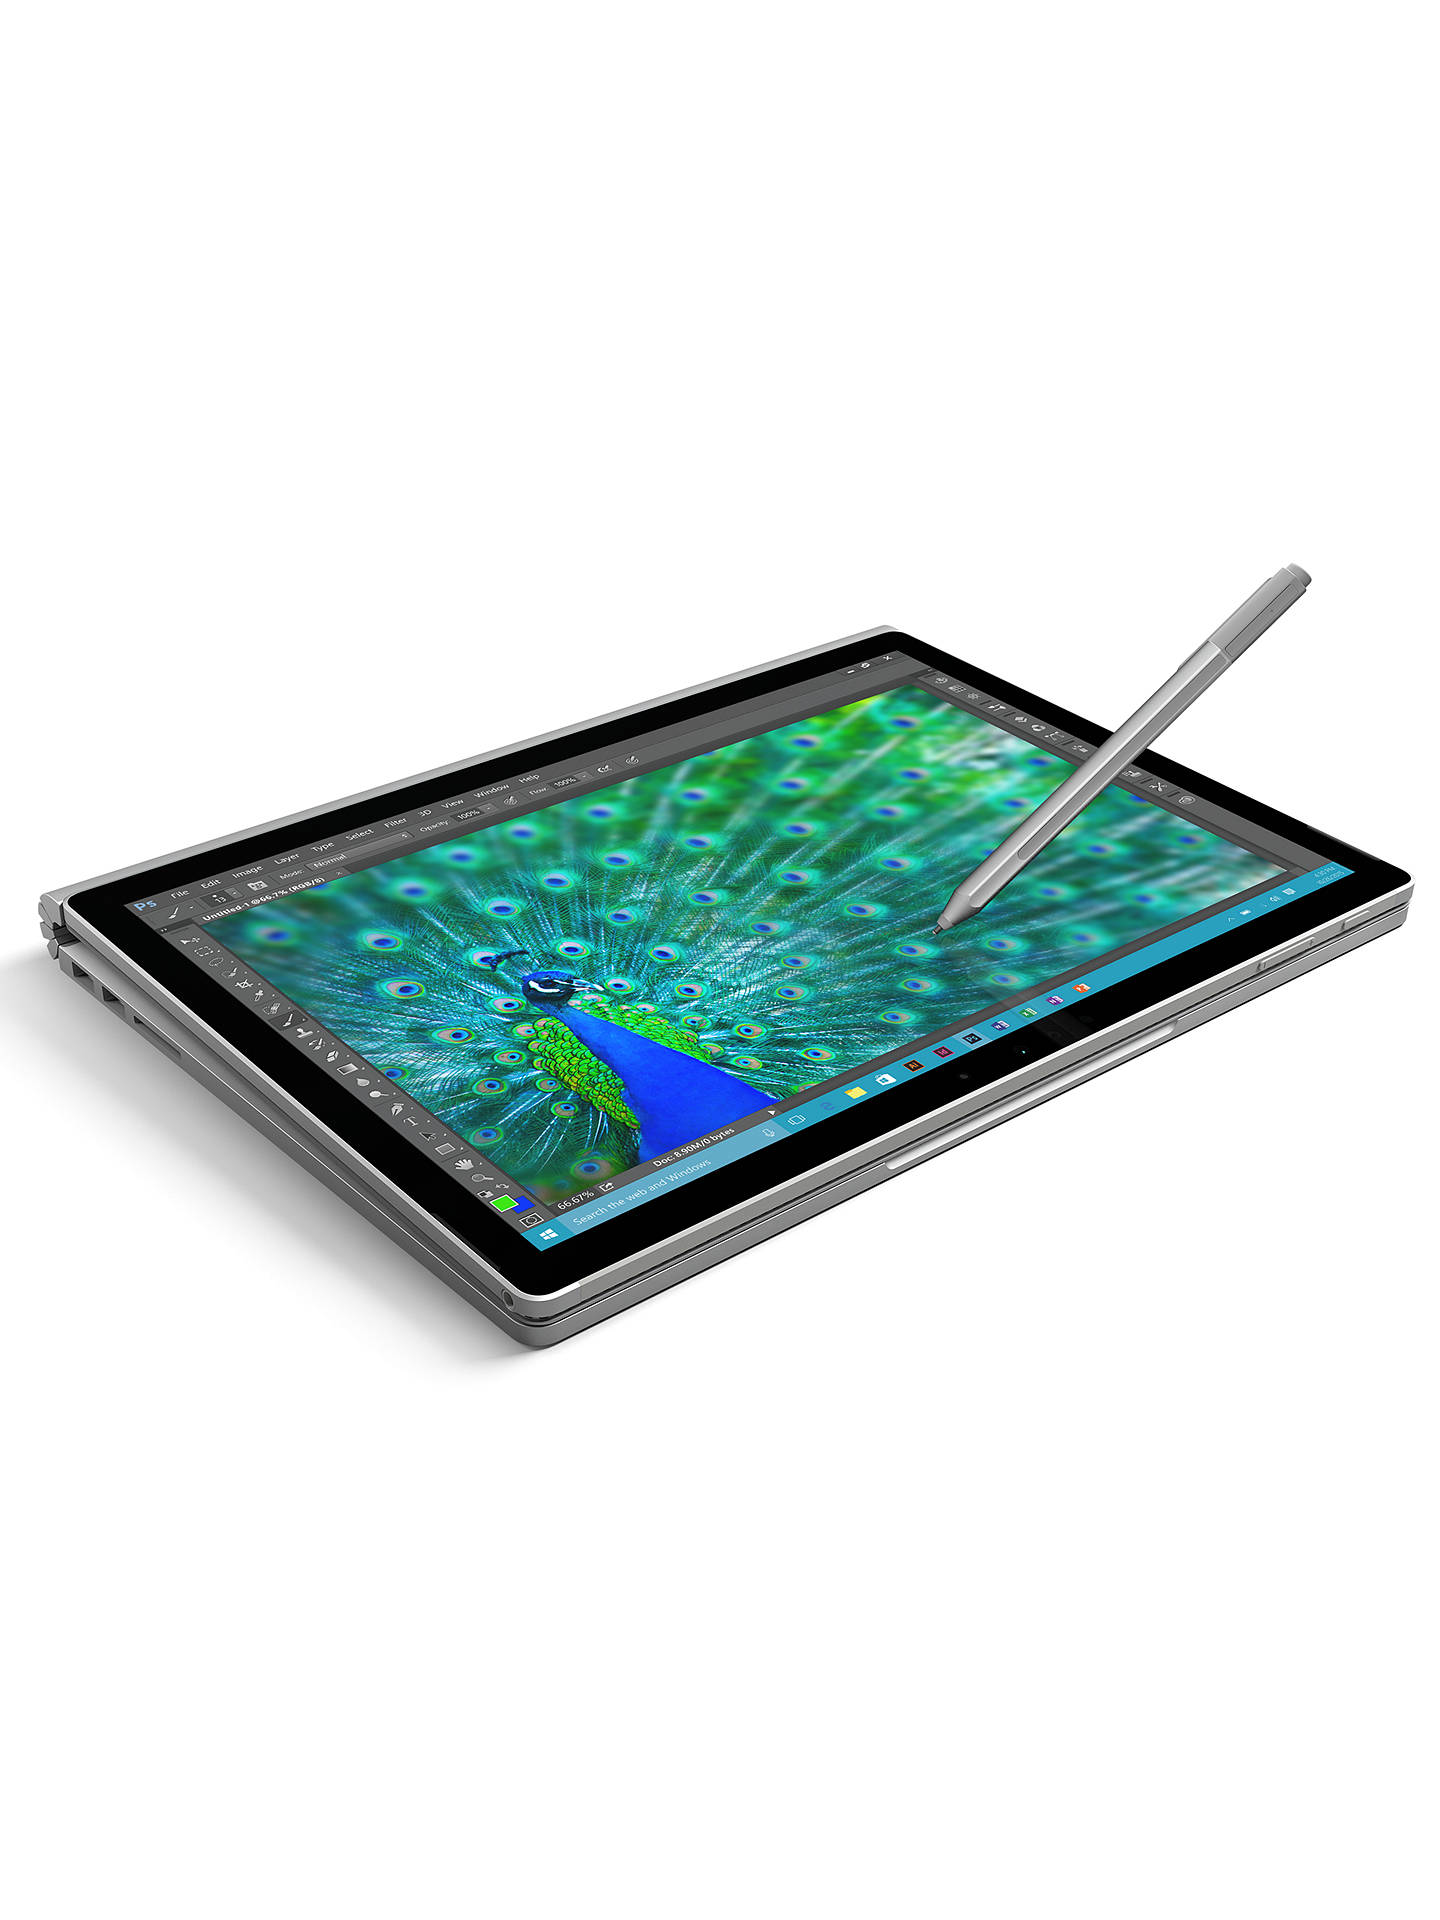 "Buy Microsoft Surface Book, Intel Core i5, 8GB RAM, 128GB, 13.5"" PixelSense Touch Screen, Silver Online at johnlewis.com"